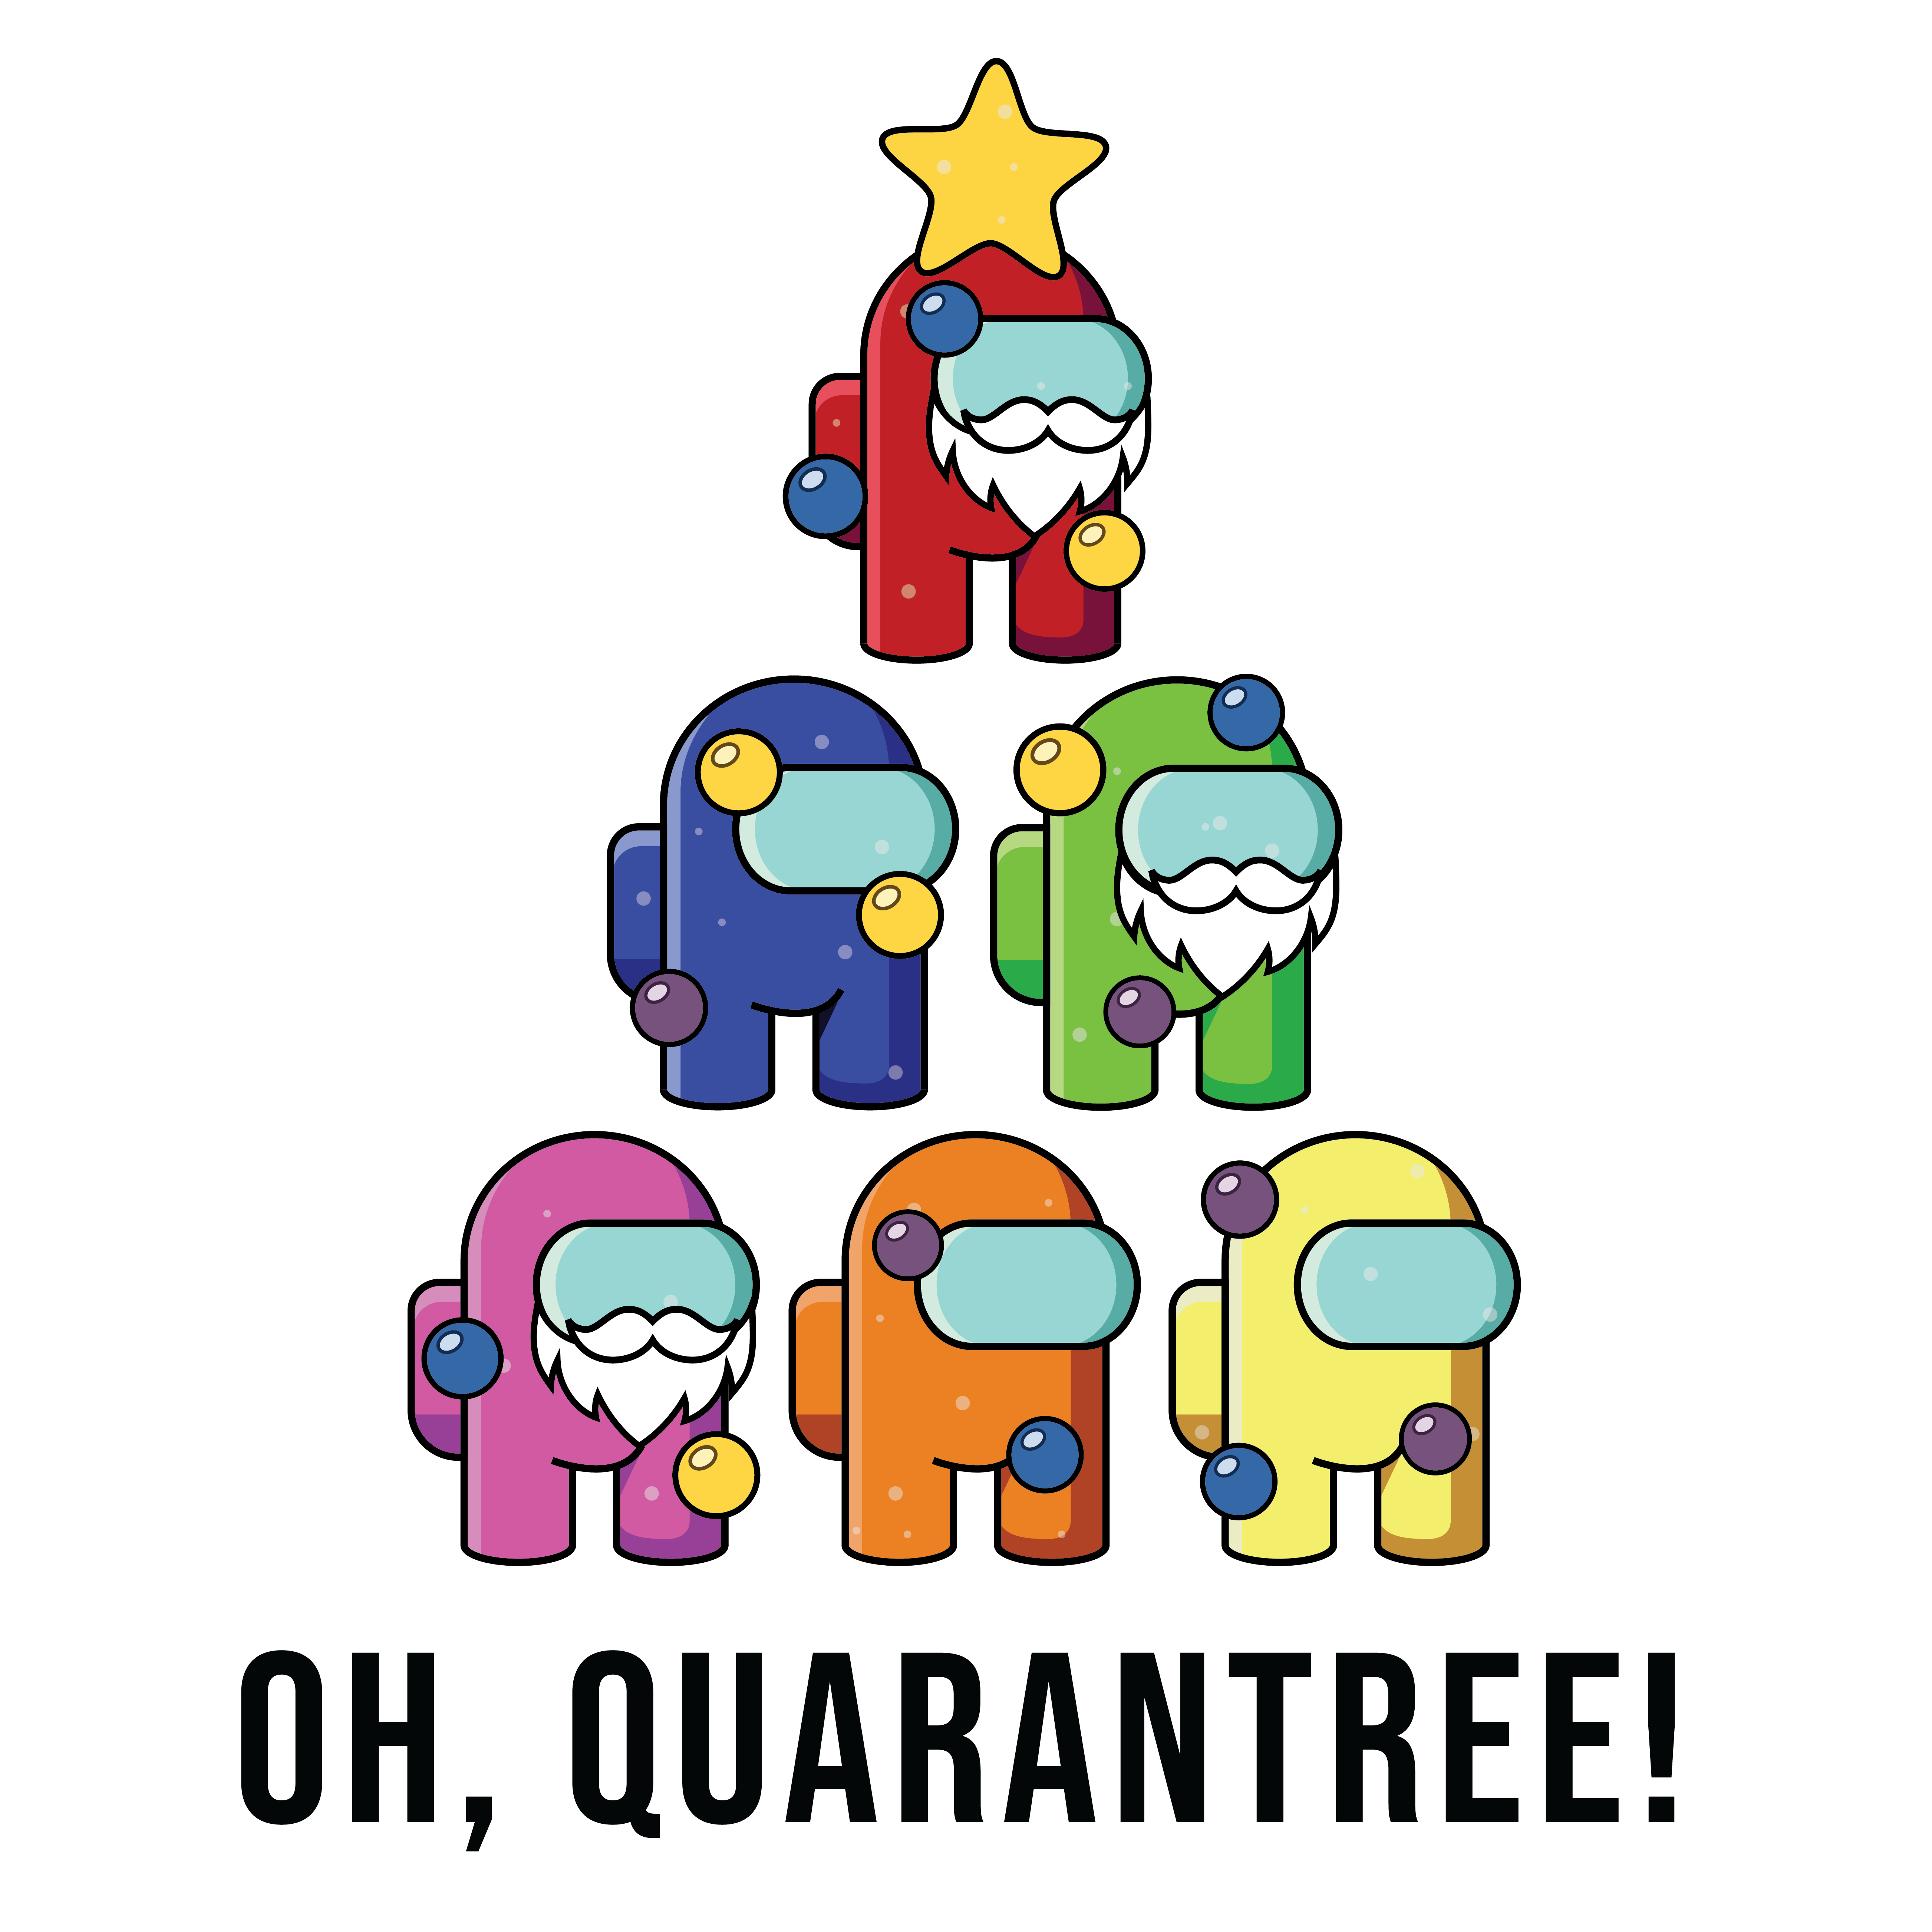 70 Among Us Christmas Edition Pack Png Format Among Us Characters Clipart Among Us Merry Christmas Bundle Among Us Christmas Tree Cute Christmas Wallpaper Cute Art Styles Wallpaper Iphone Cute